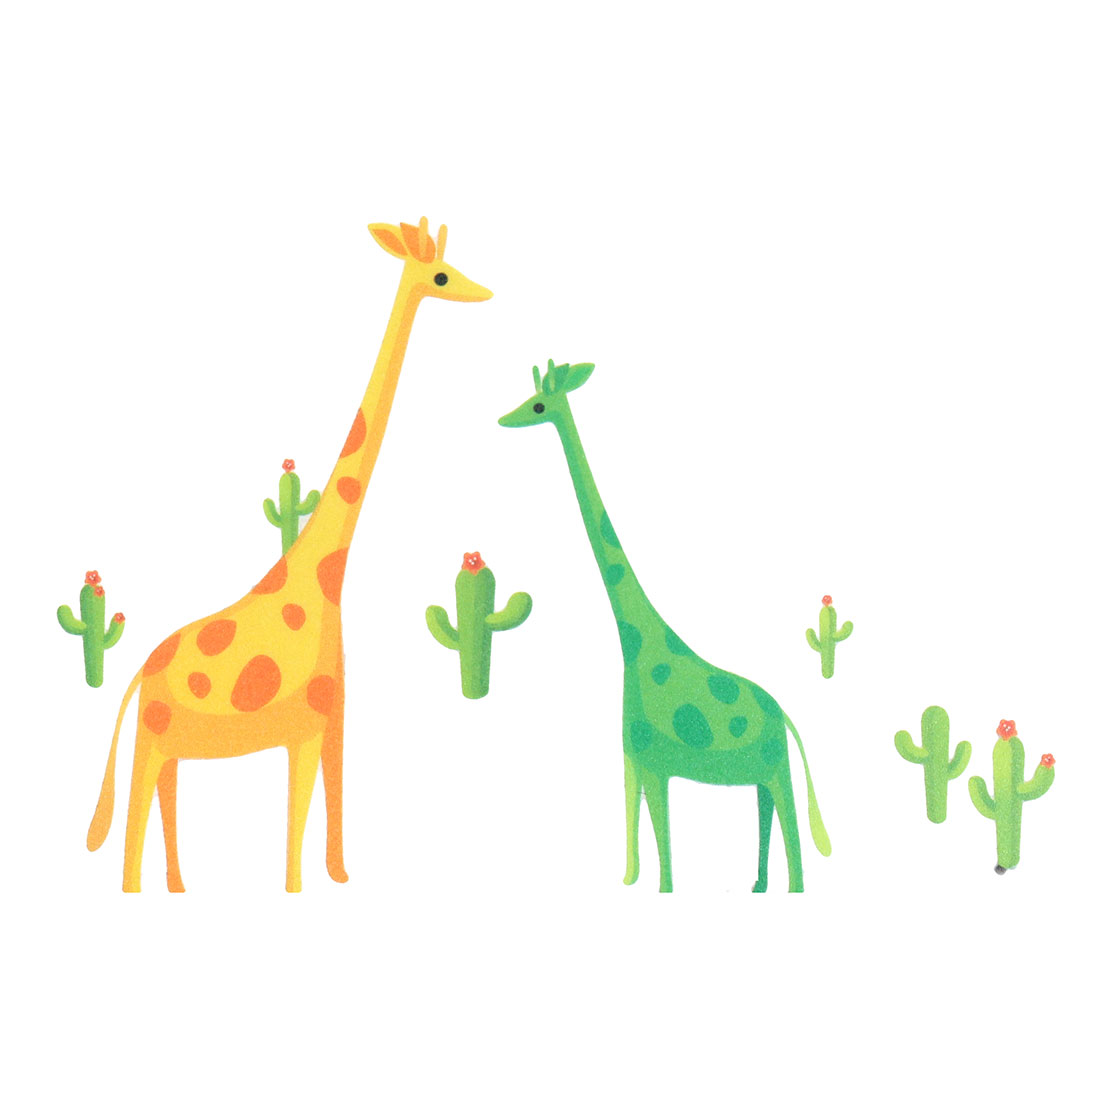 Living Room Giraffe Printed Removable DIY Mural Inspiration Art Wall Sticker